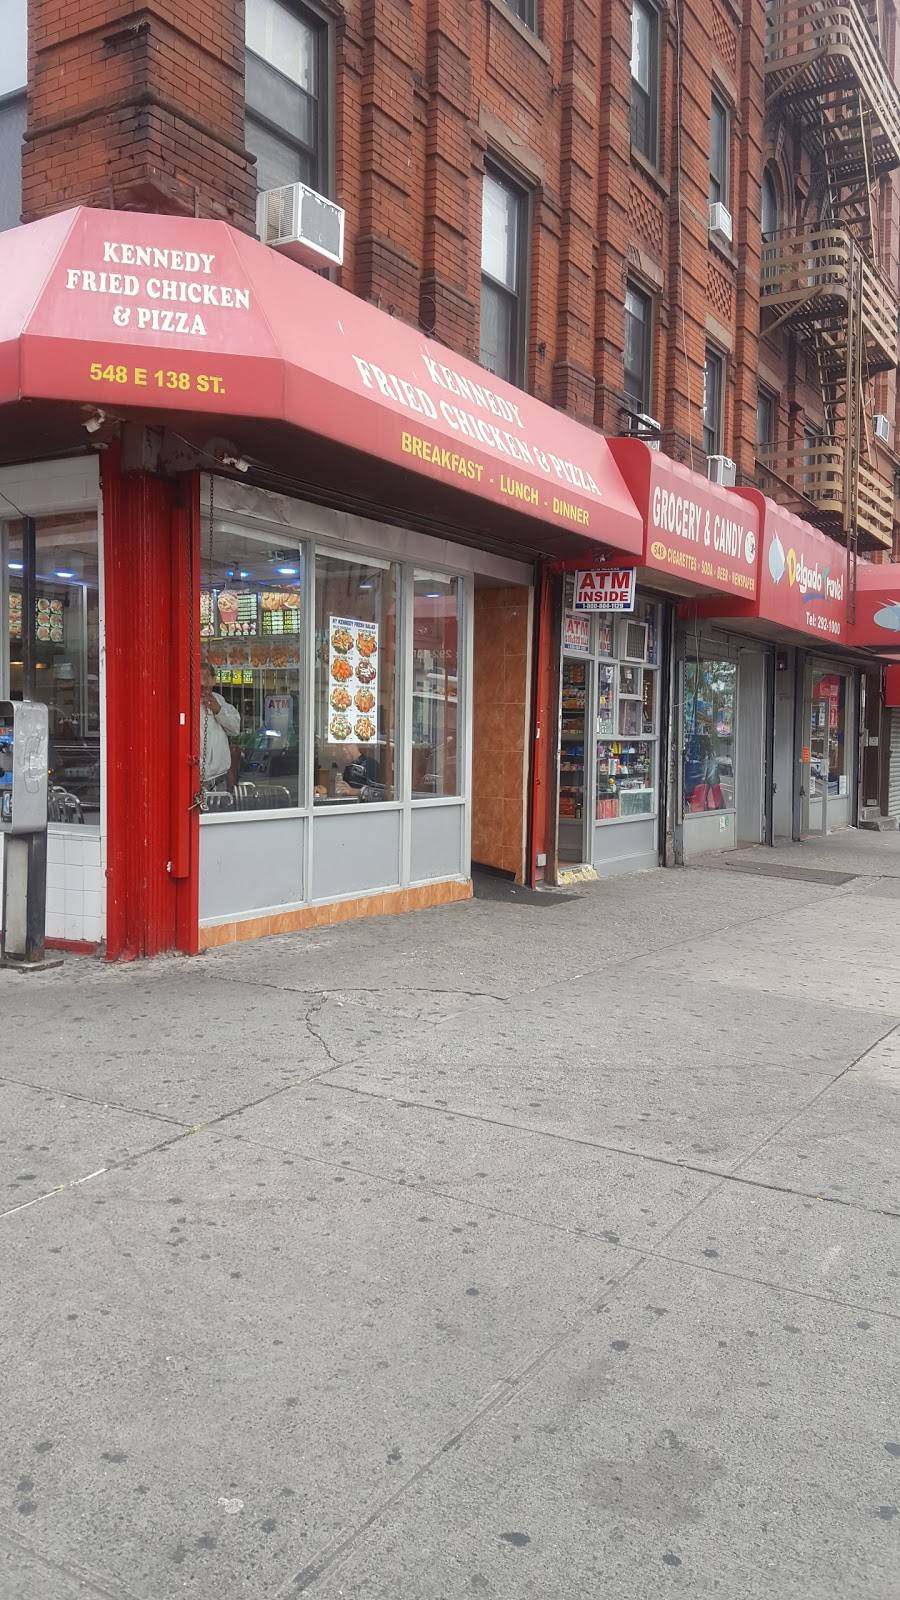 Kennedy Fried Chicken | meal takeaway | 548 E 138th St, Bronx, NY 10454, USA